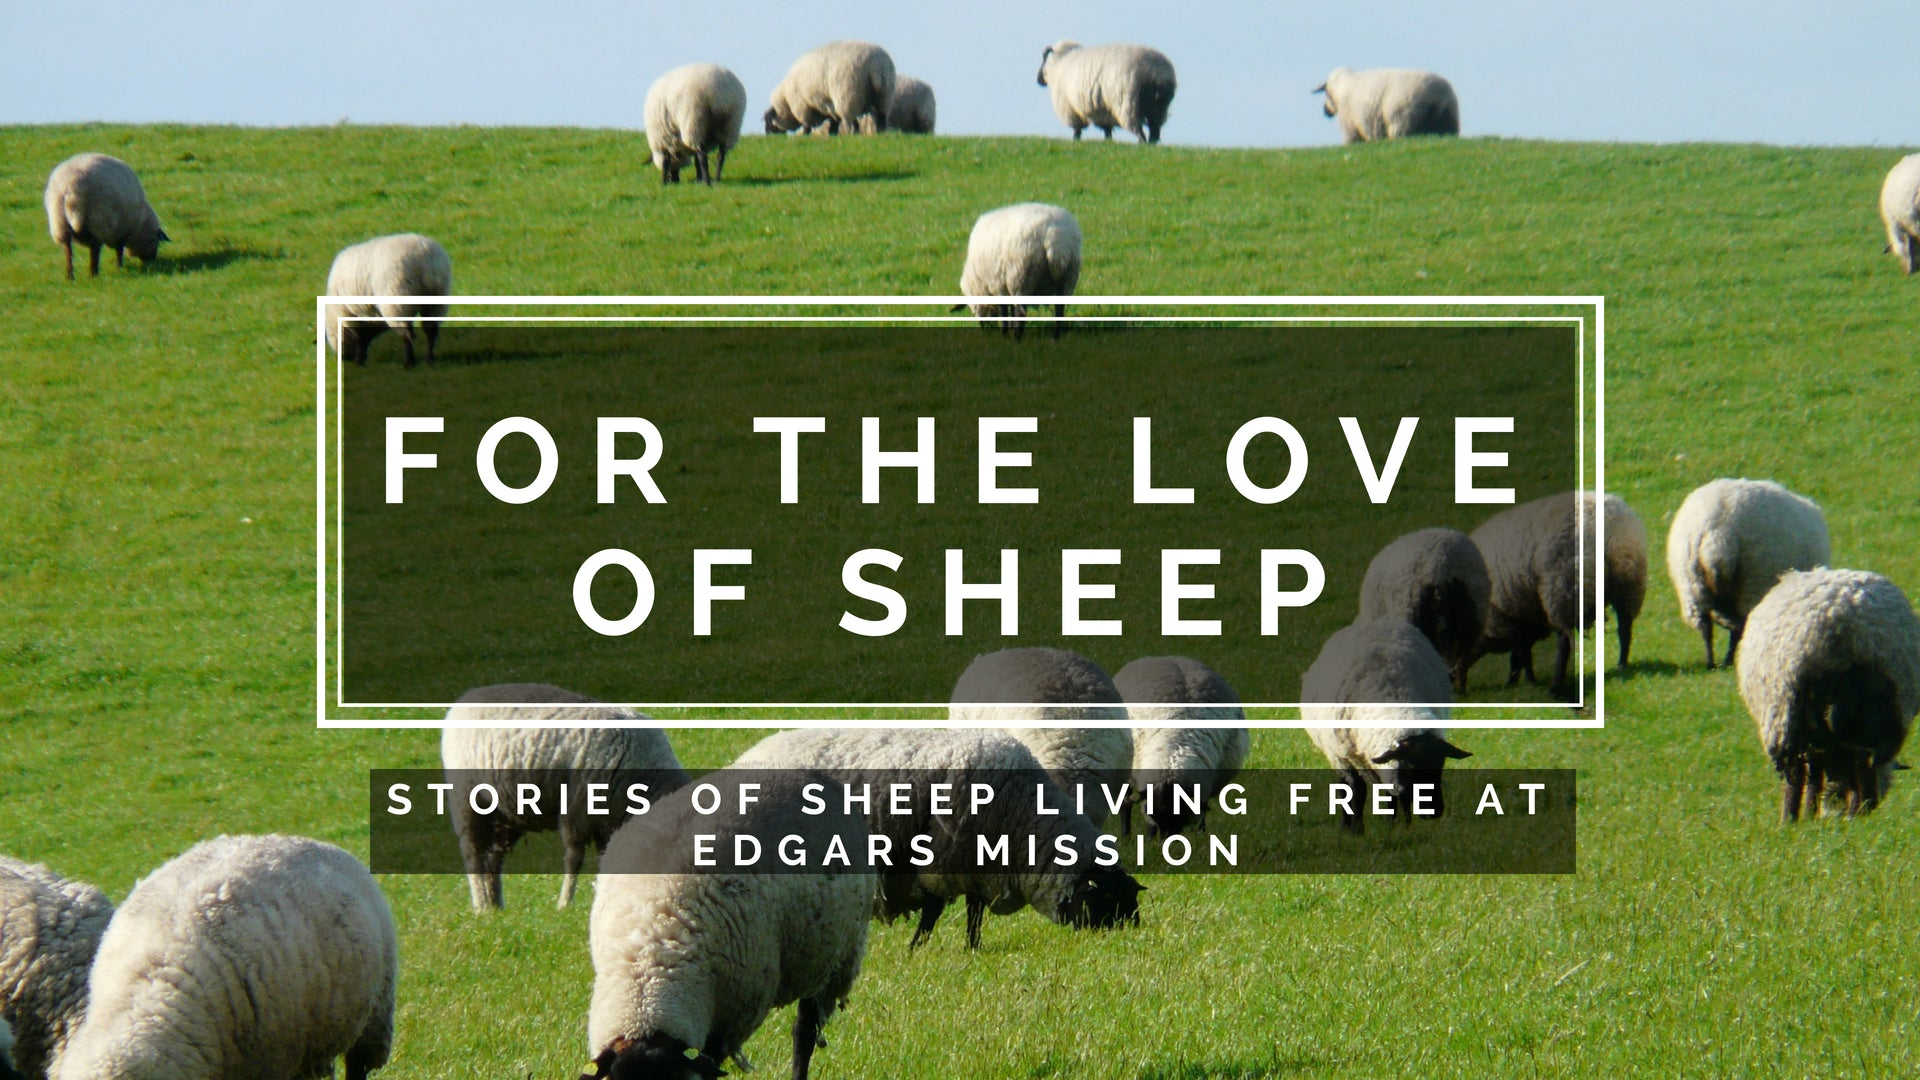 For the Love of Sheep - stories of sheep living free at Edgar's Mission